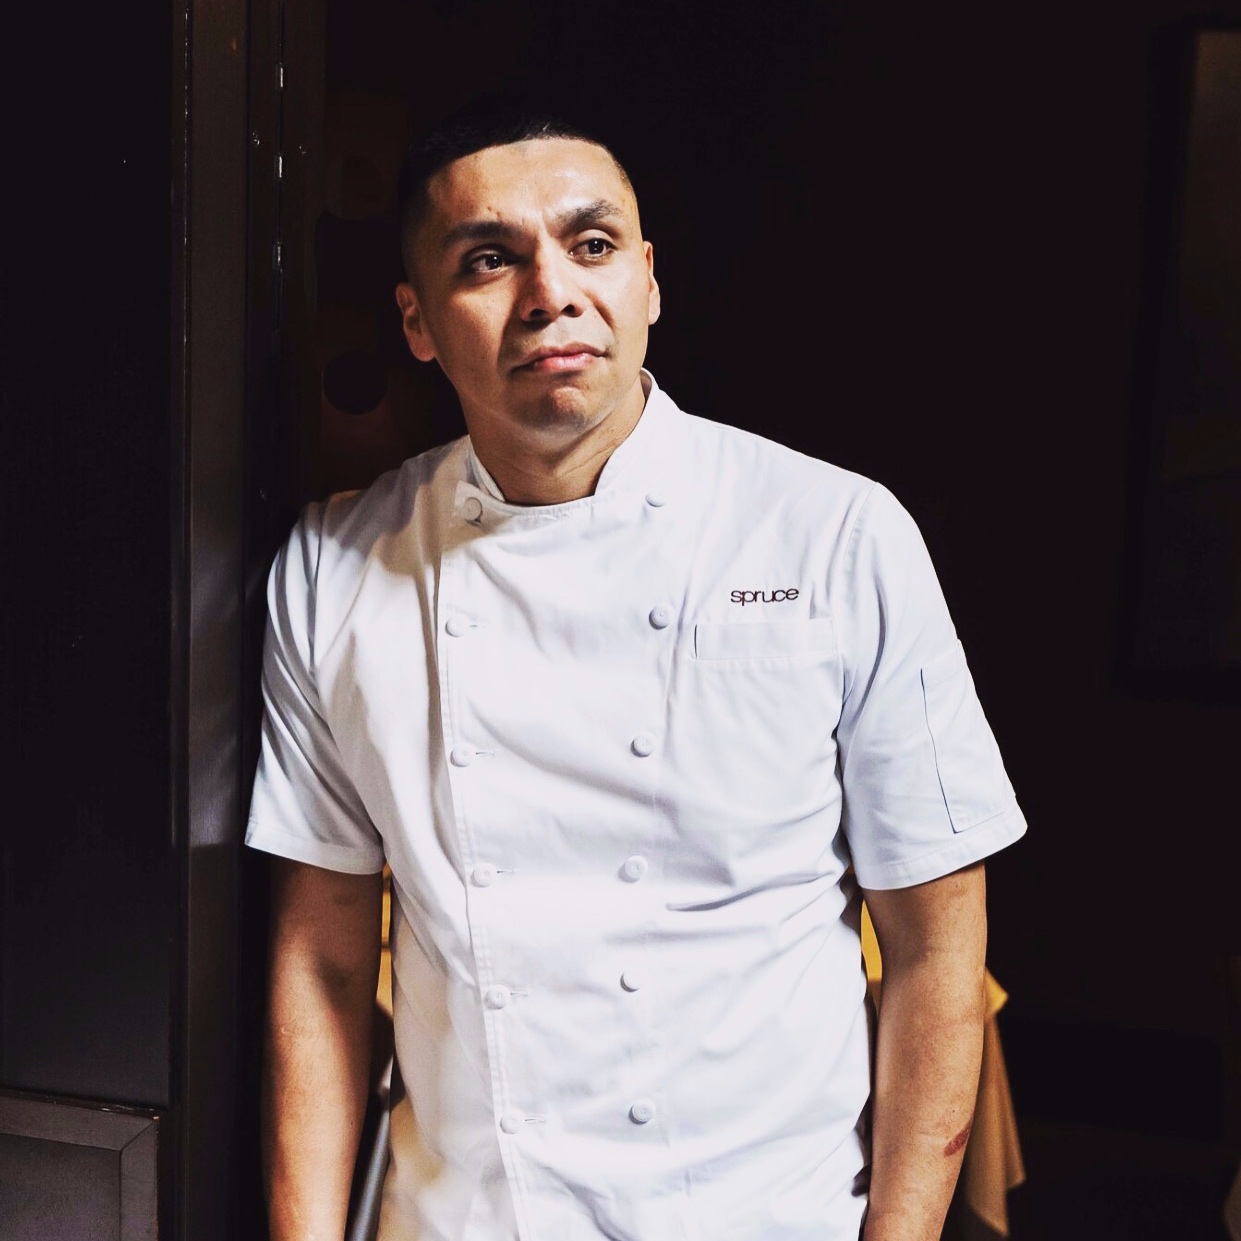 Chef Rogelio Garcia  Chef Rogelio Garcia began his culinary career in Yountville, CA and before long took a job as sous chef at the now-closed, but highly regarded, Cyrus restaurant in Healdsburg. From there, his career has included positions such as Executive Sous Chef at Calistoga Ranch, Chef de Partie at French Laundry, and Executive Chef at Angele and The Commissary where he received 3 stars from the highly acclaimed critic Michael Bauer of the San Francisco Chronicle.  In spring of 2018, Rogelio joined the team at San Francisco's Michelin-starred Spruce.  Rogelio was a contestant on Bravo's Top Chef Season 15 and has cooked at the famed James Beard Foundation House.  In his spare time, he enjoys spending time with his two young sons.